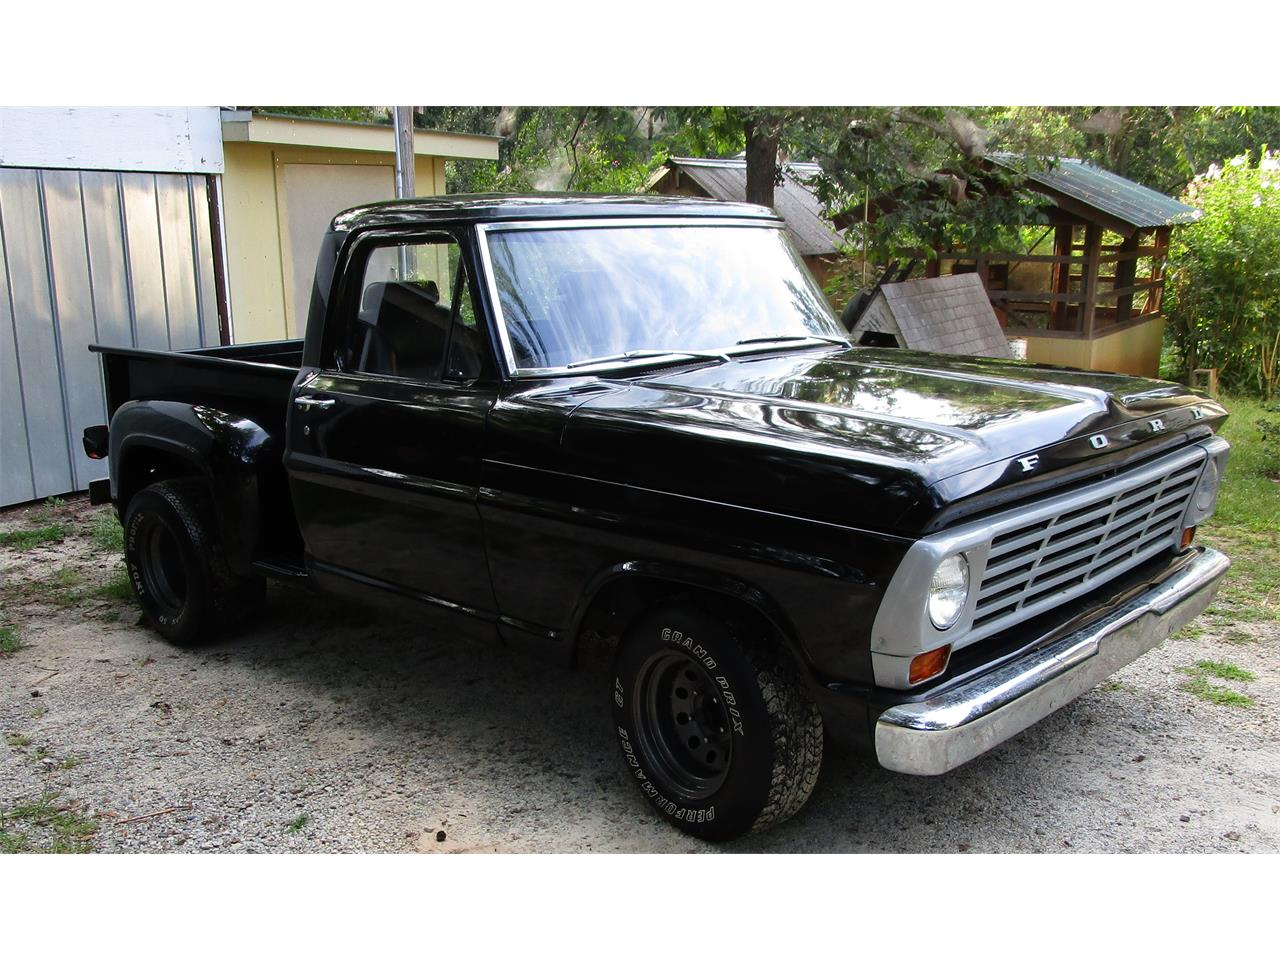 Large picture of 67 f100 oc6b